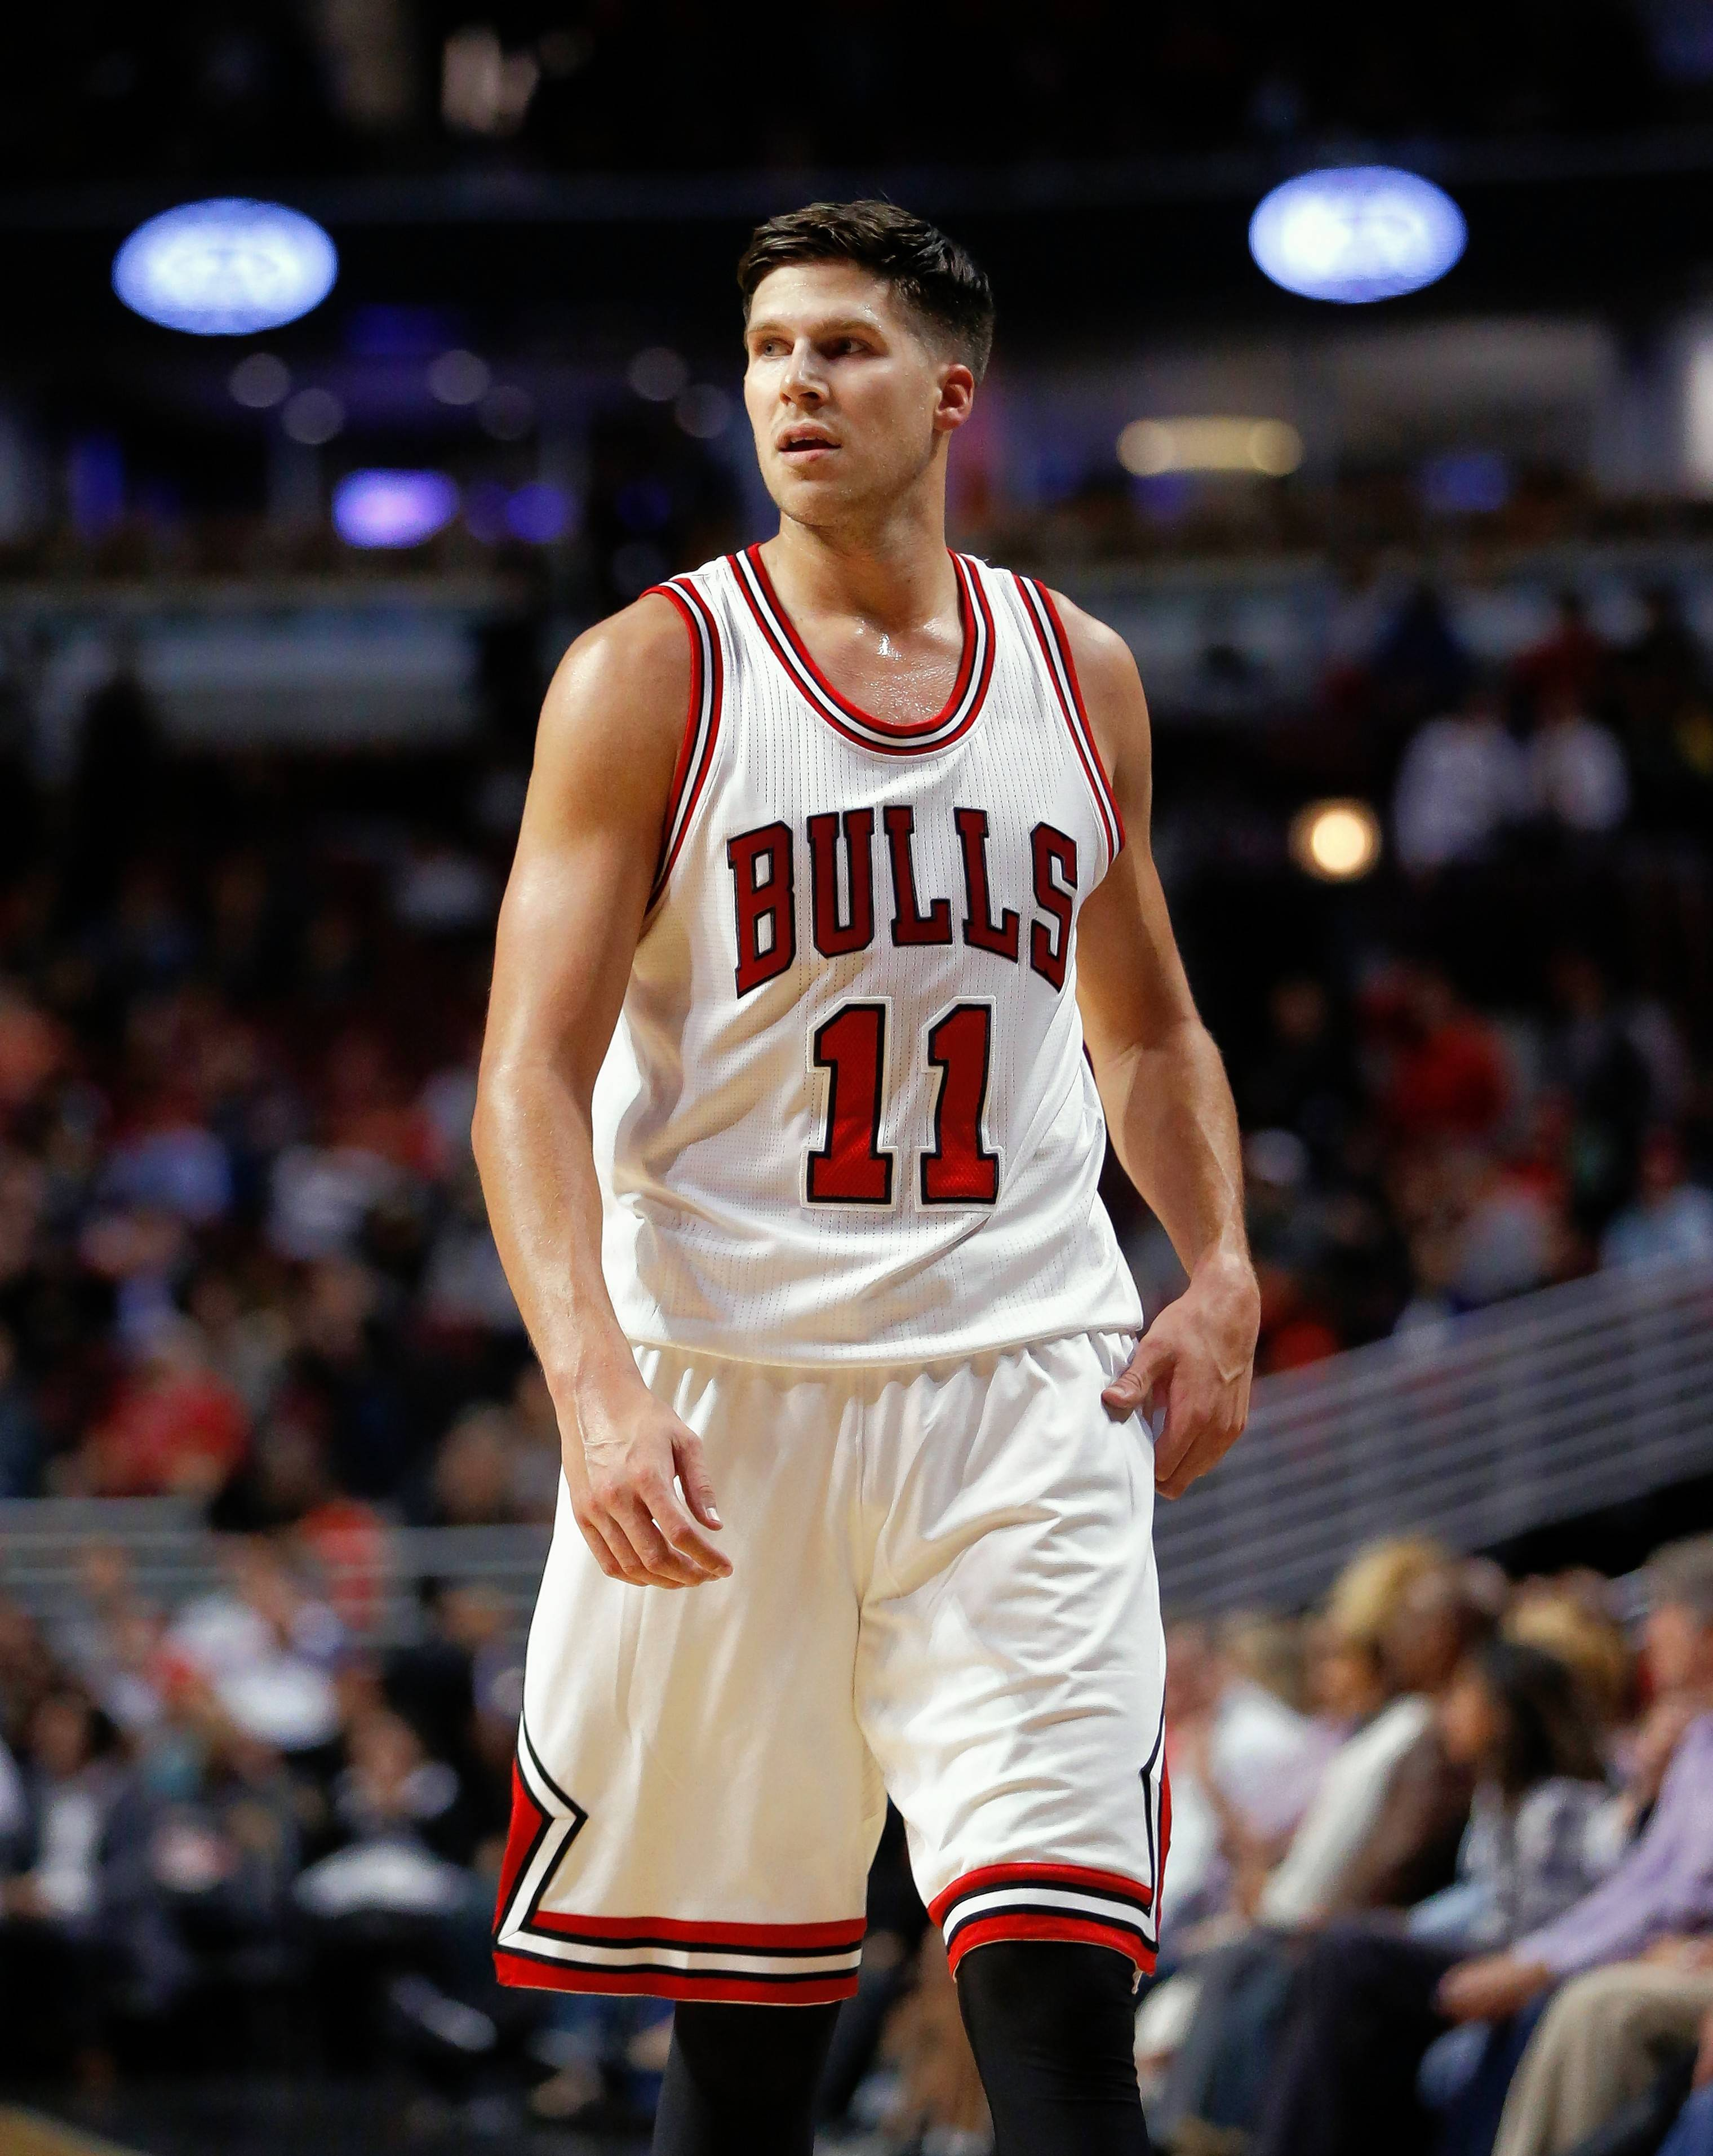 Chicago Bulls forward Doug McDermott sets up on offense during the second half of an NBA preseason basketball game against the Milwaukee Bucks Monday, Oct. 3, 2016, in Chicago.